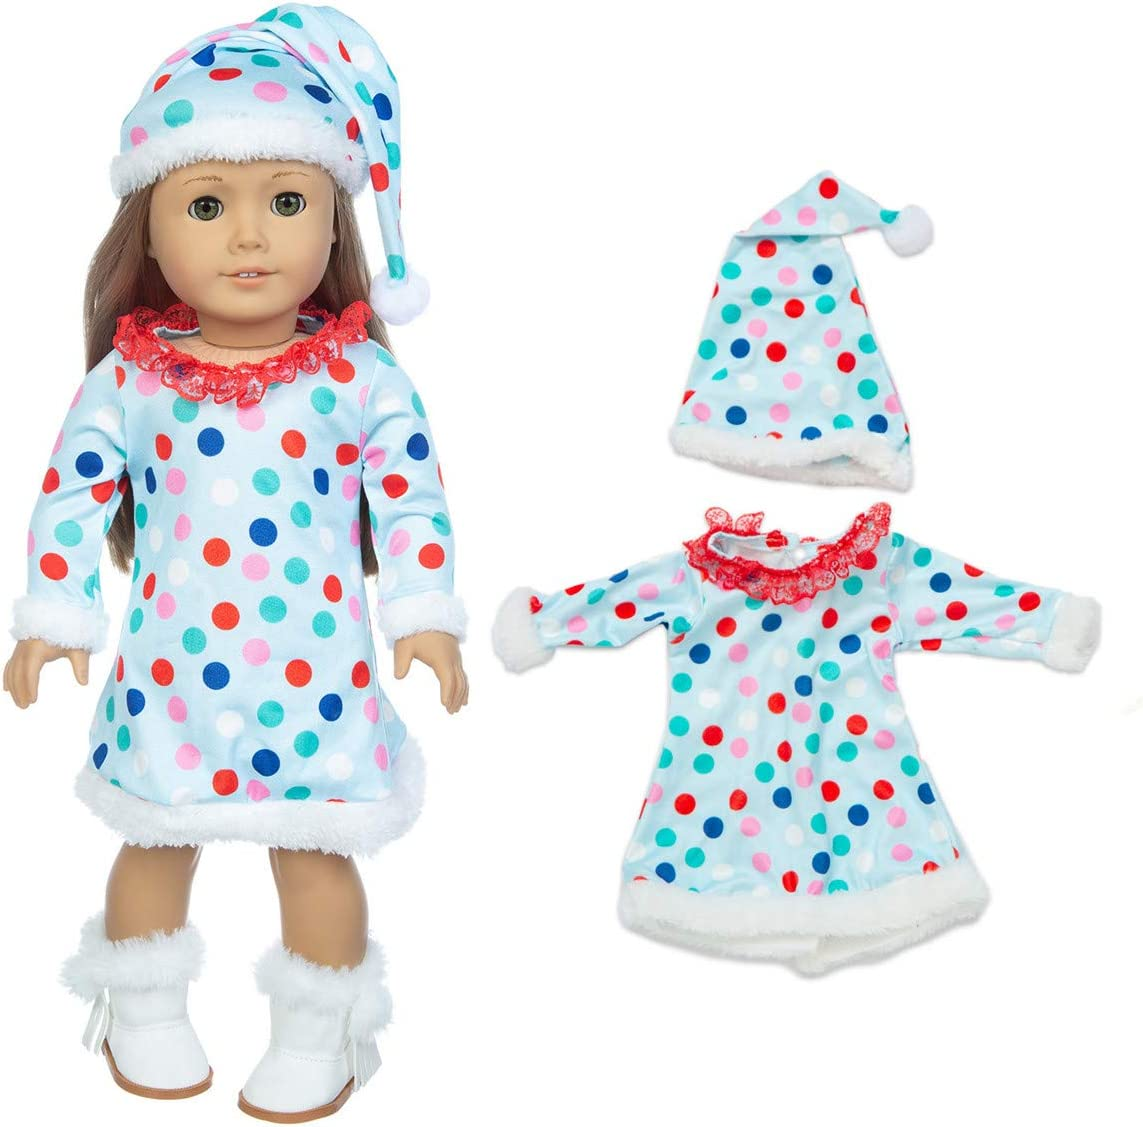 JELEUON 3 pcs Set Christmas Clothes Dress with Hats Scarfs for Outfits for 16-18 inch American Girl Doll Accessory Toy Gift